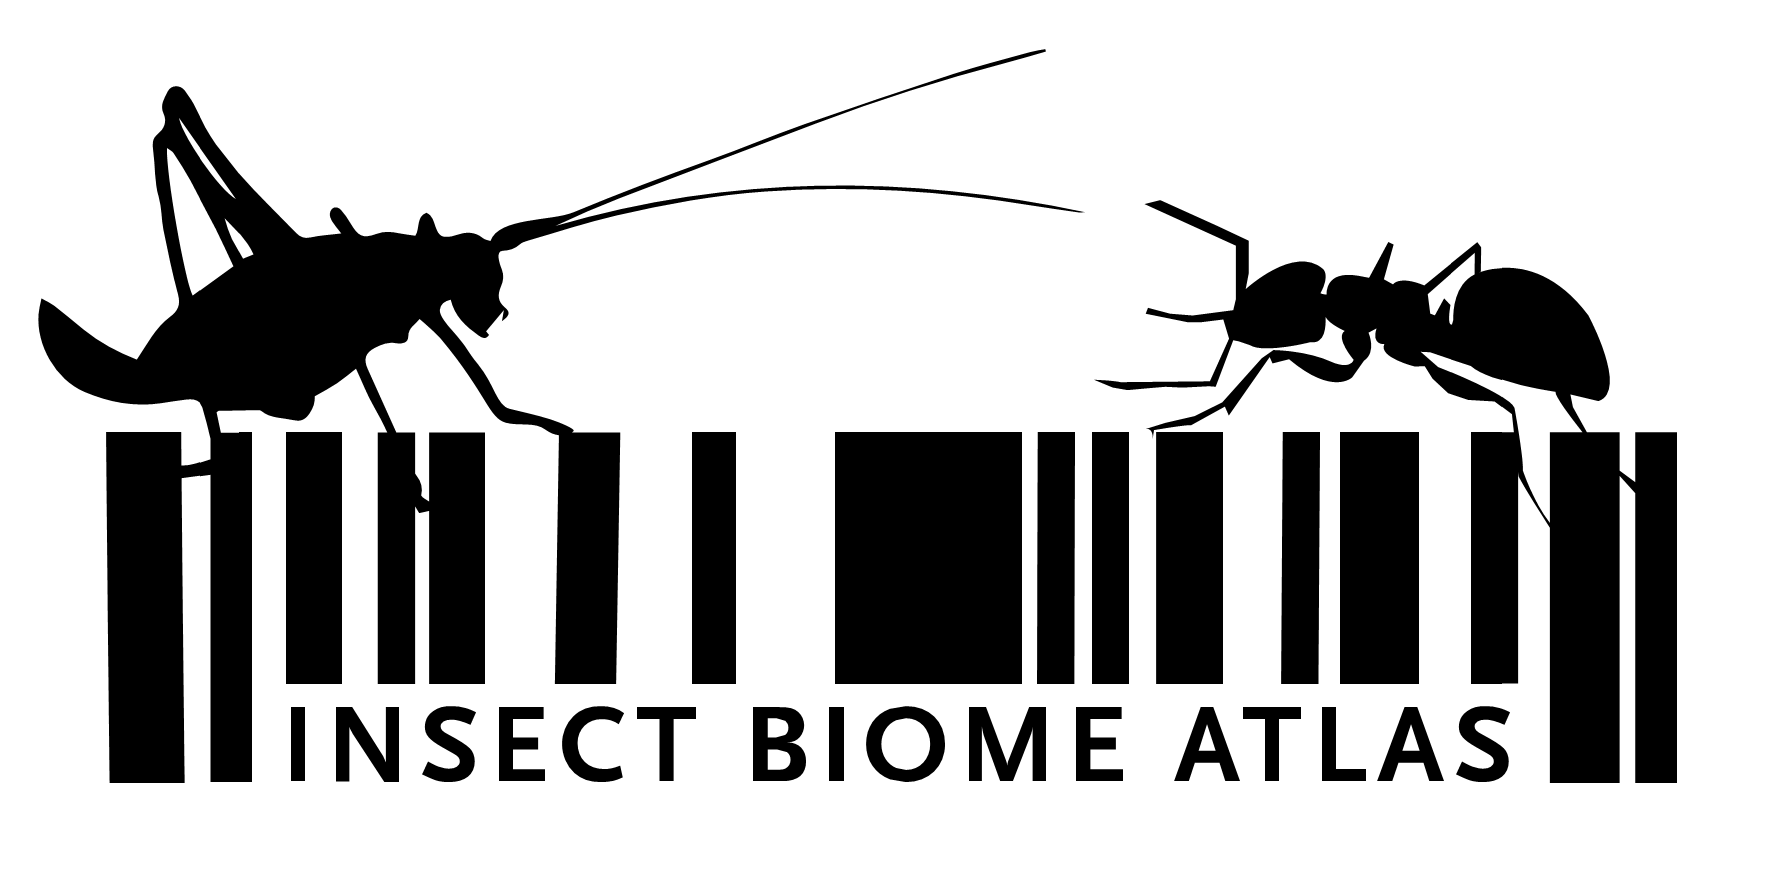 Insect Biome Atlas project logo.